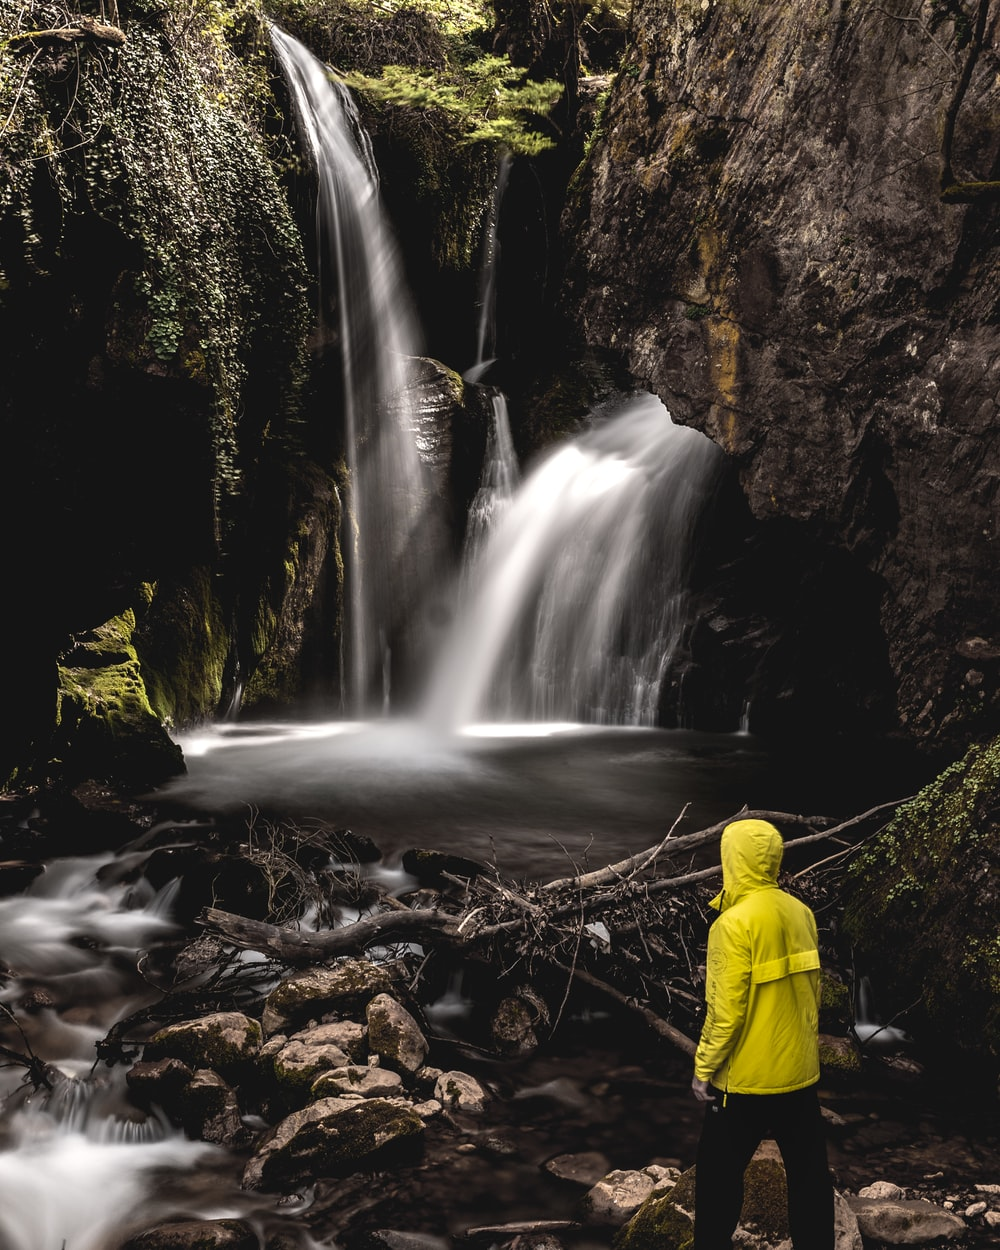 man in yellow jacket standing in front of waterfalls during daytime